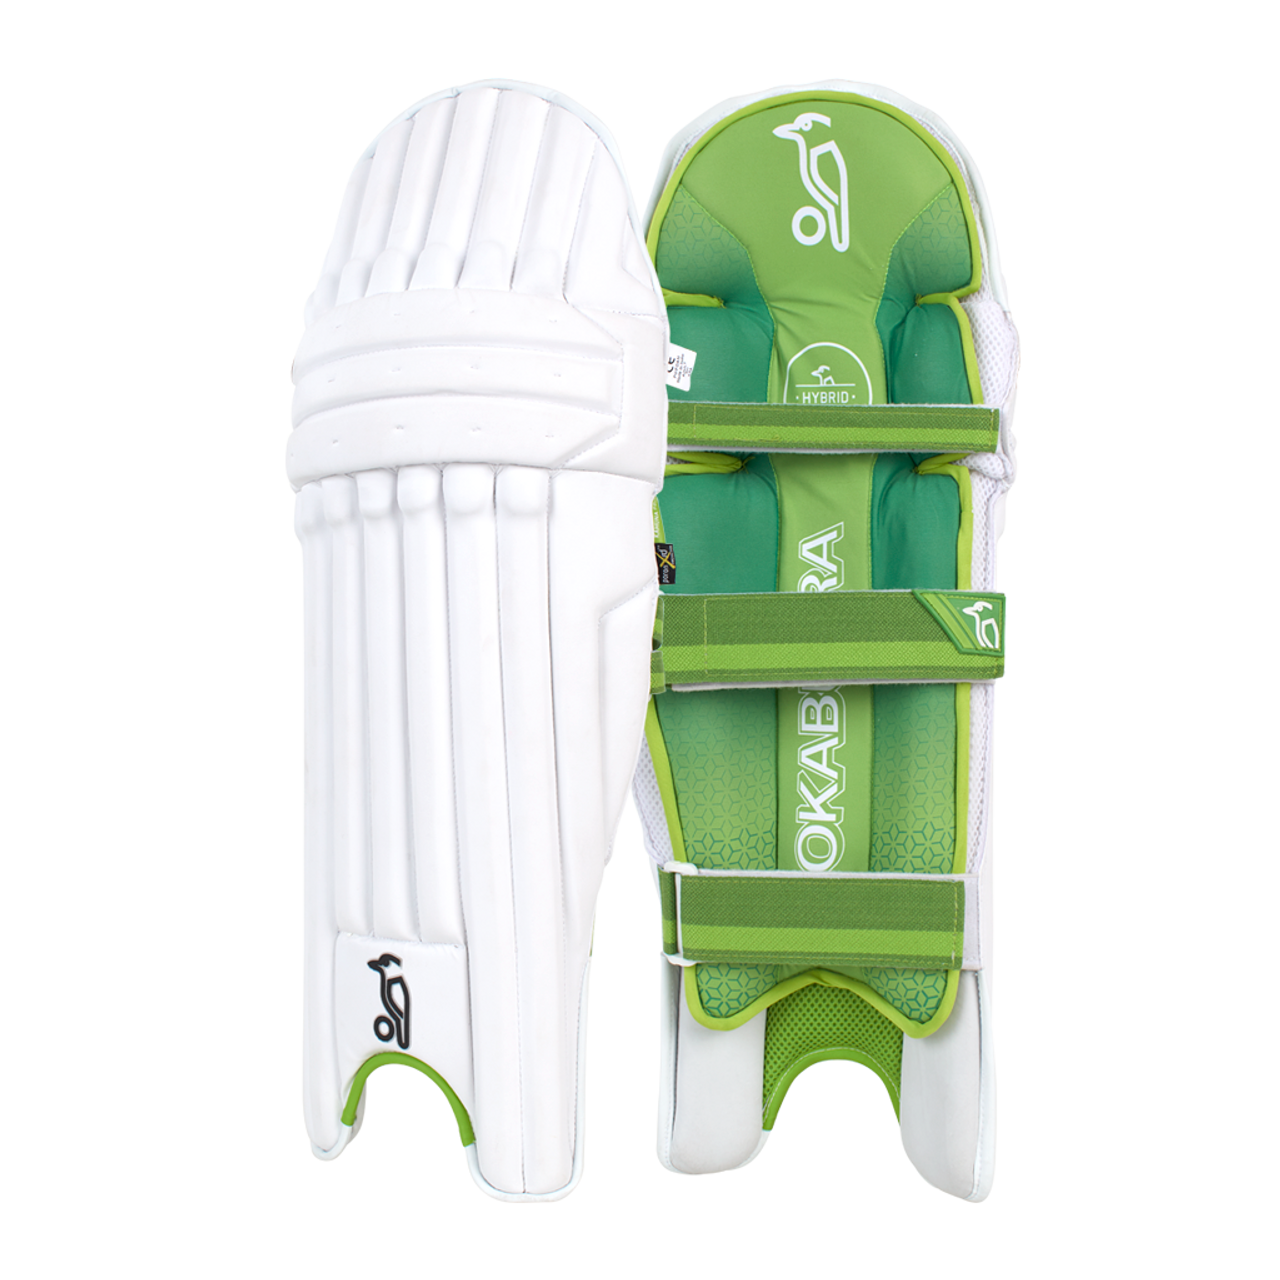 Kookaburra Batting Pads